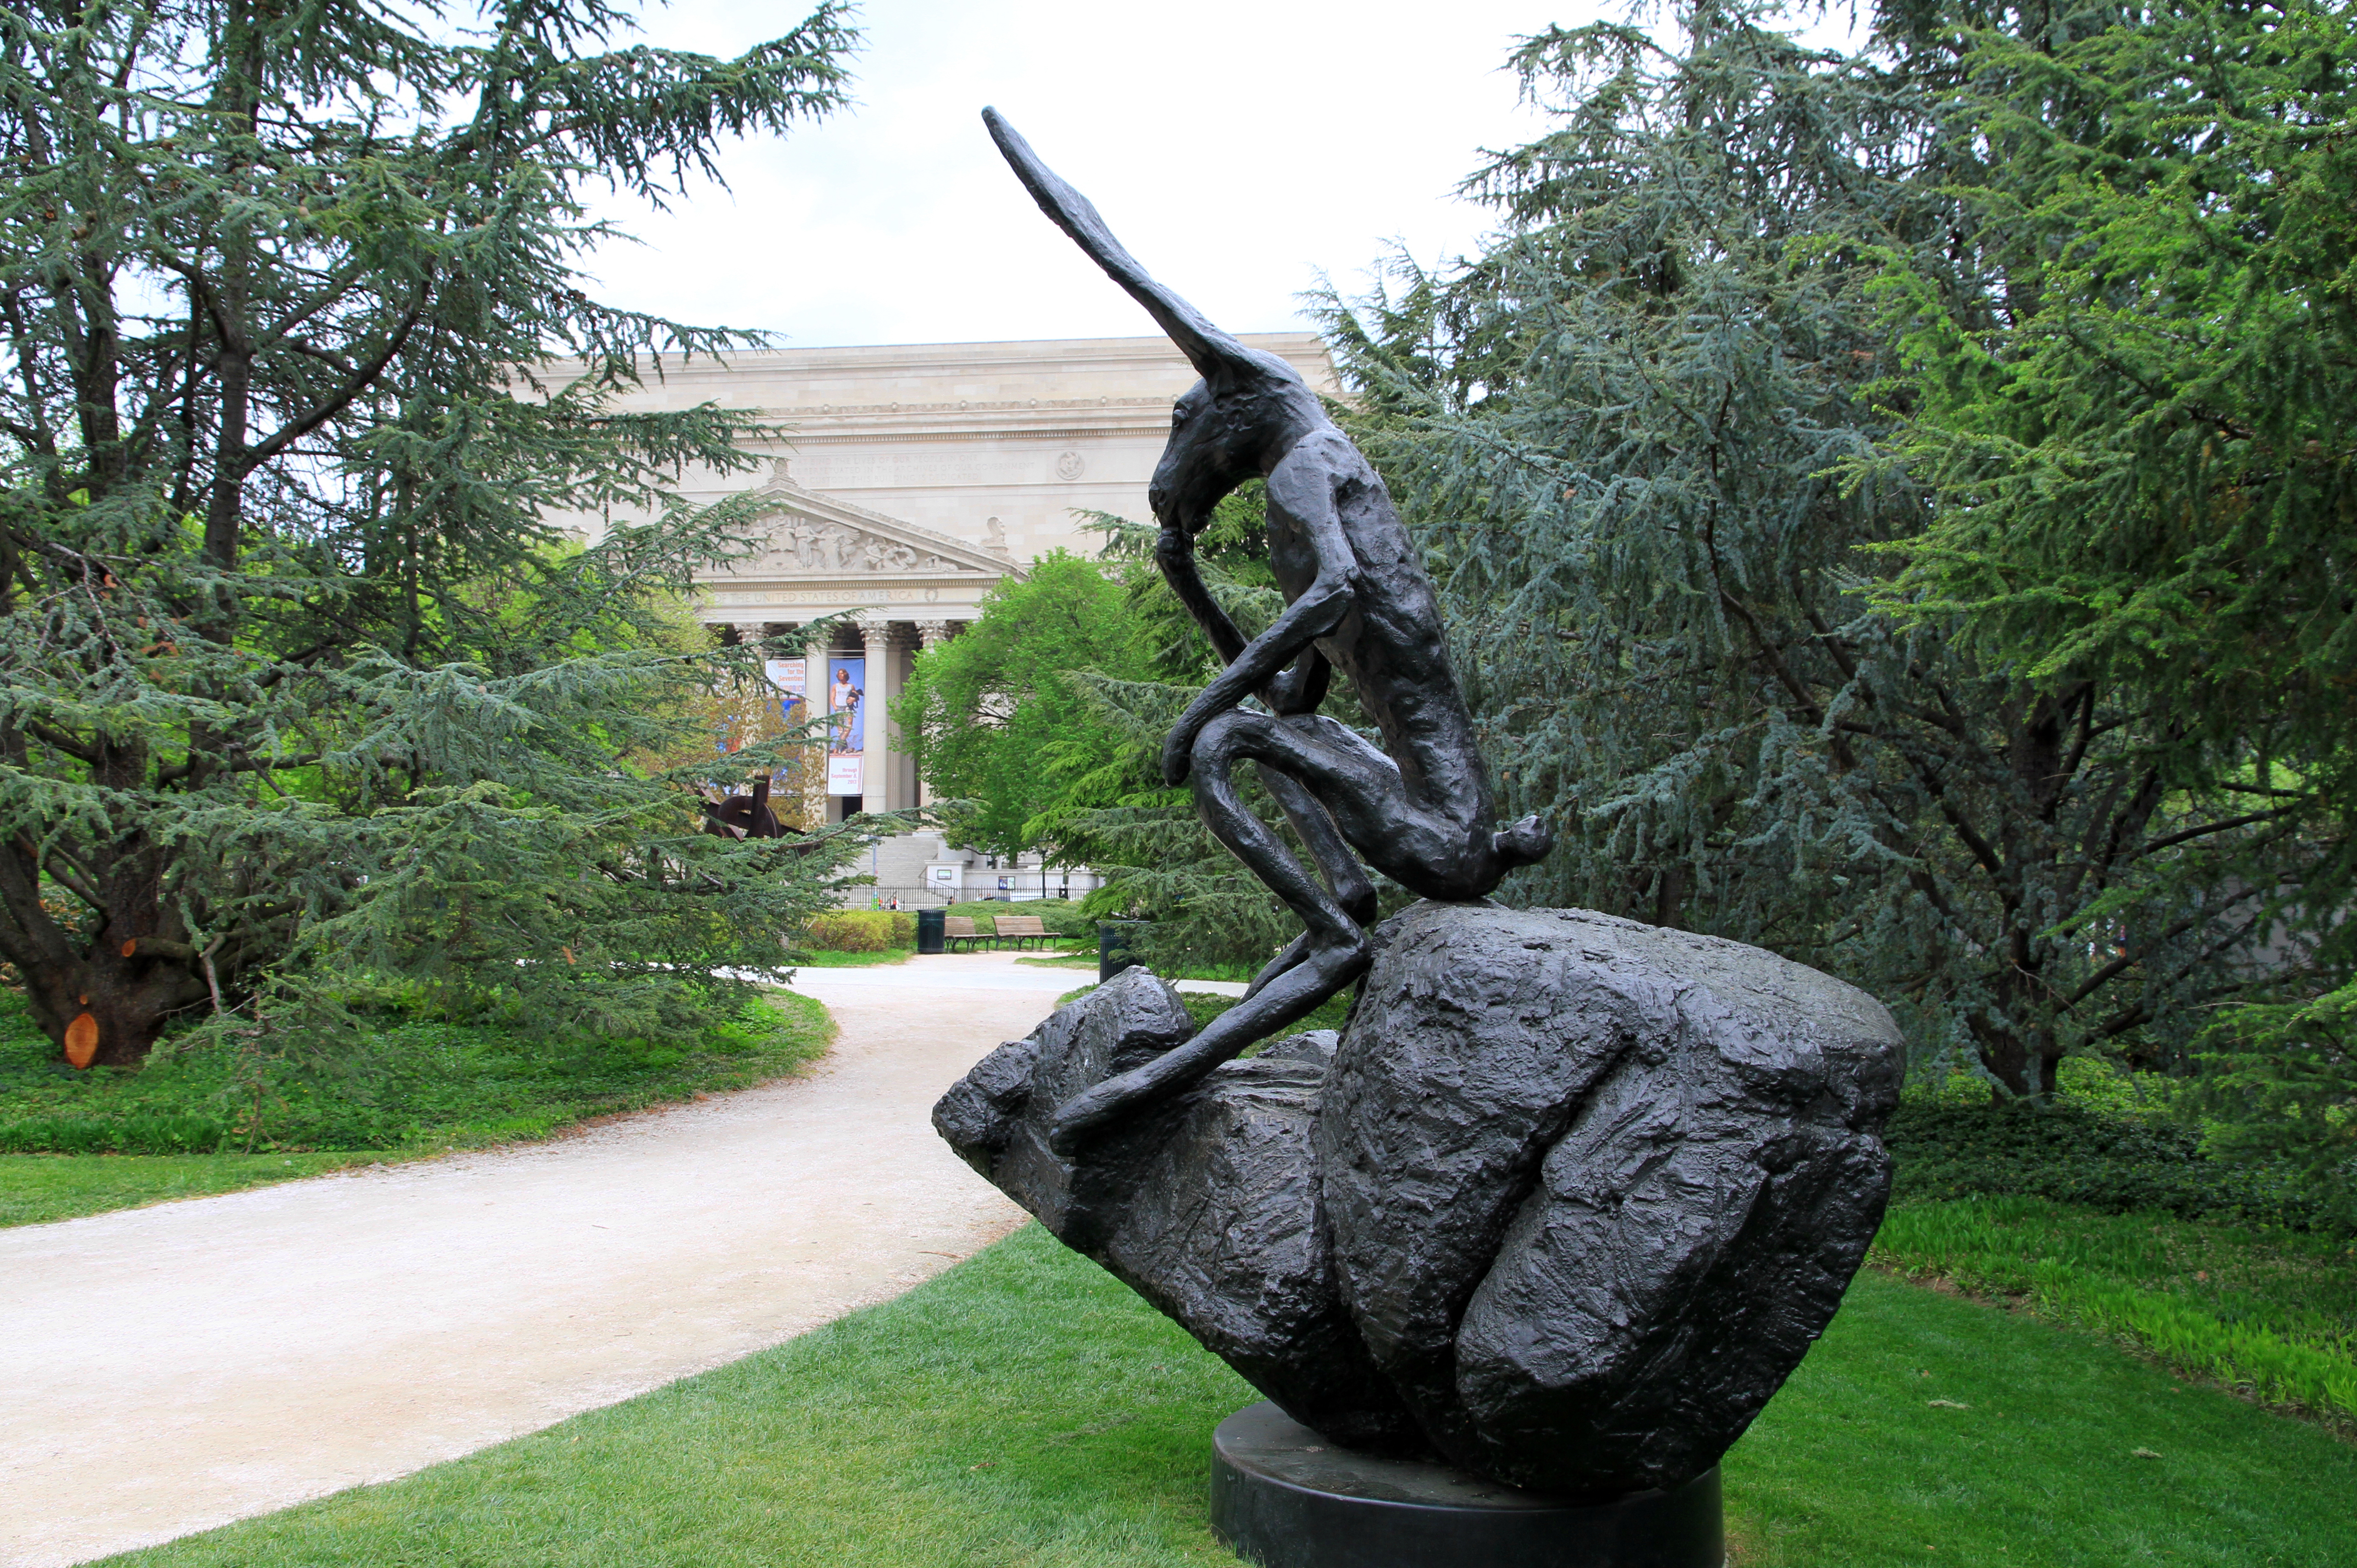 10 Best Museums To View Sculpture In